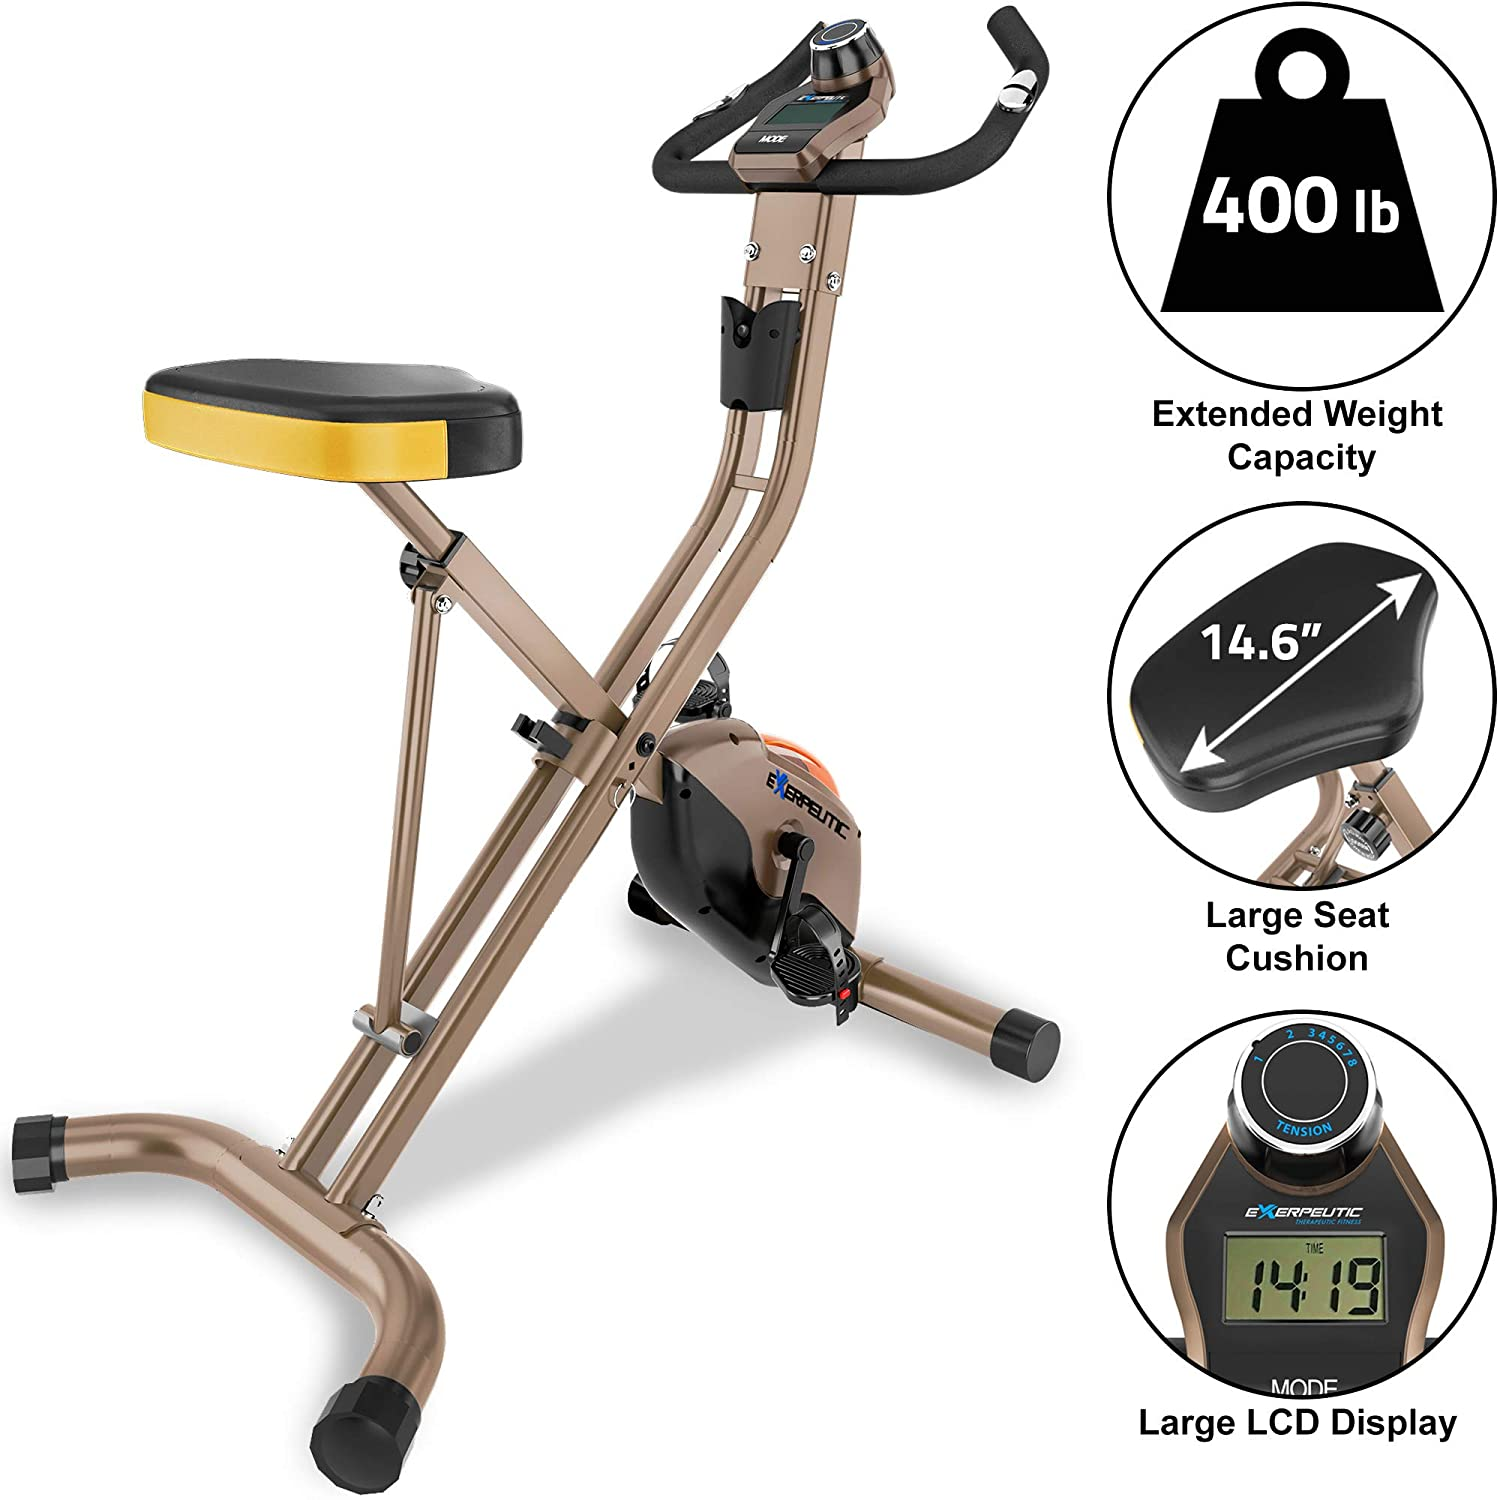 Exerpeutic Gold 500 XLS Foldable Upright Bike, 400 lbs ...